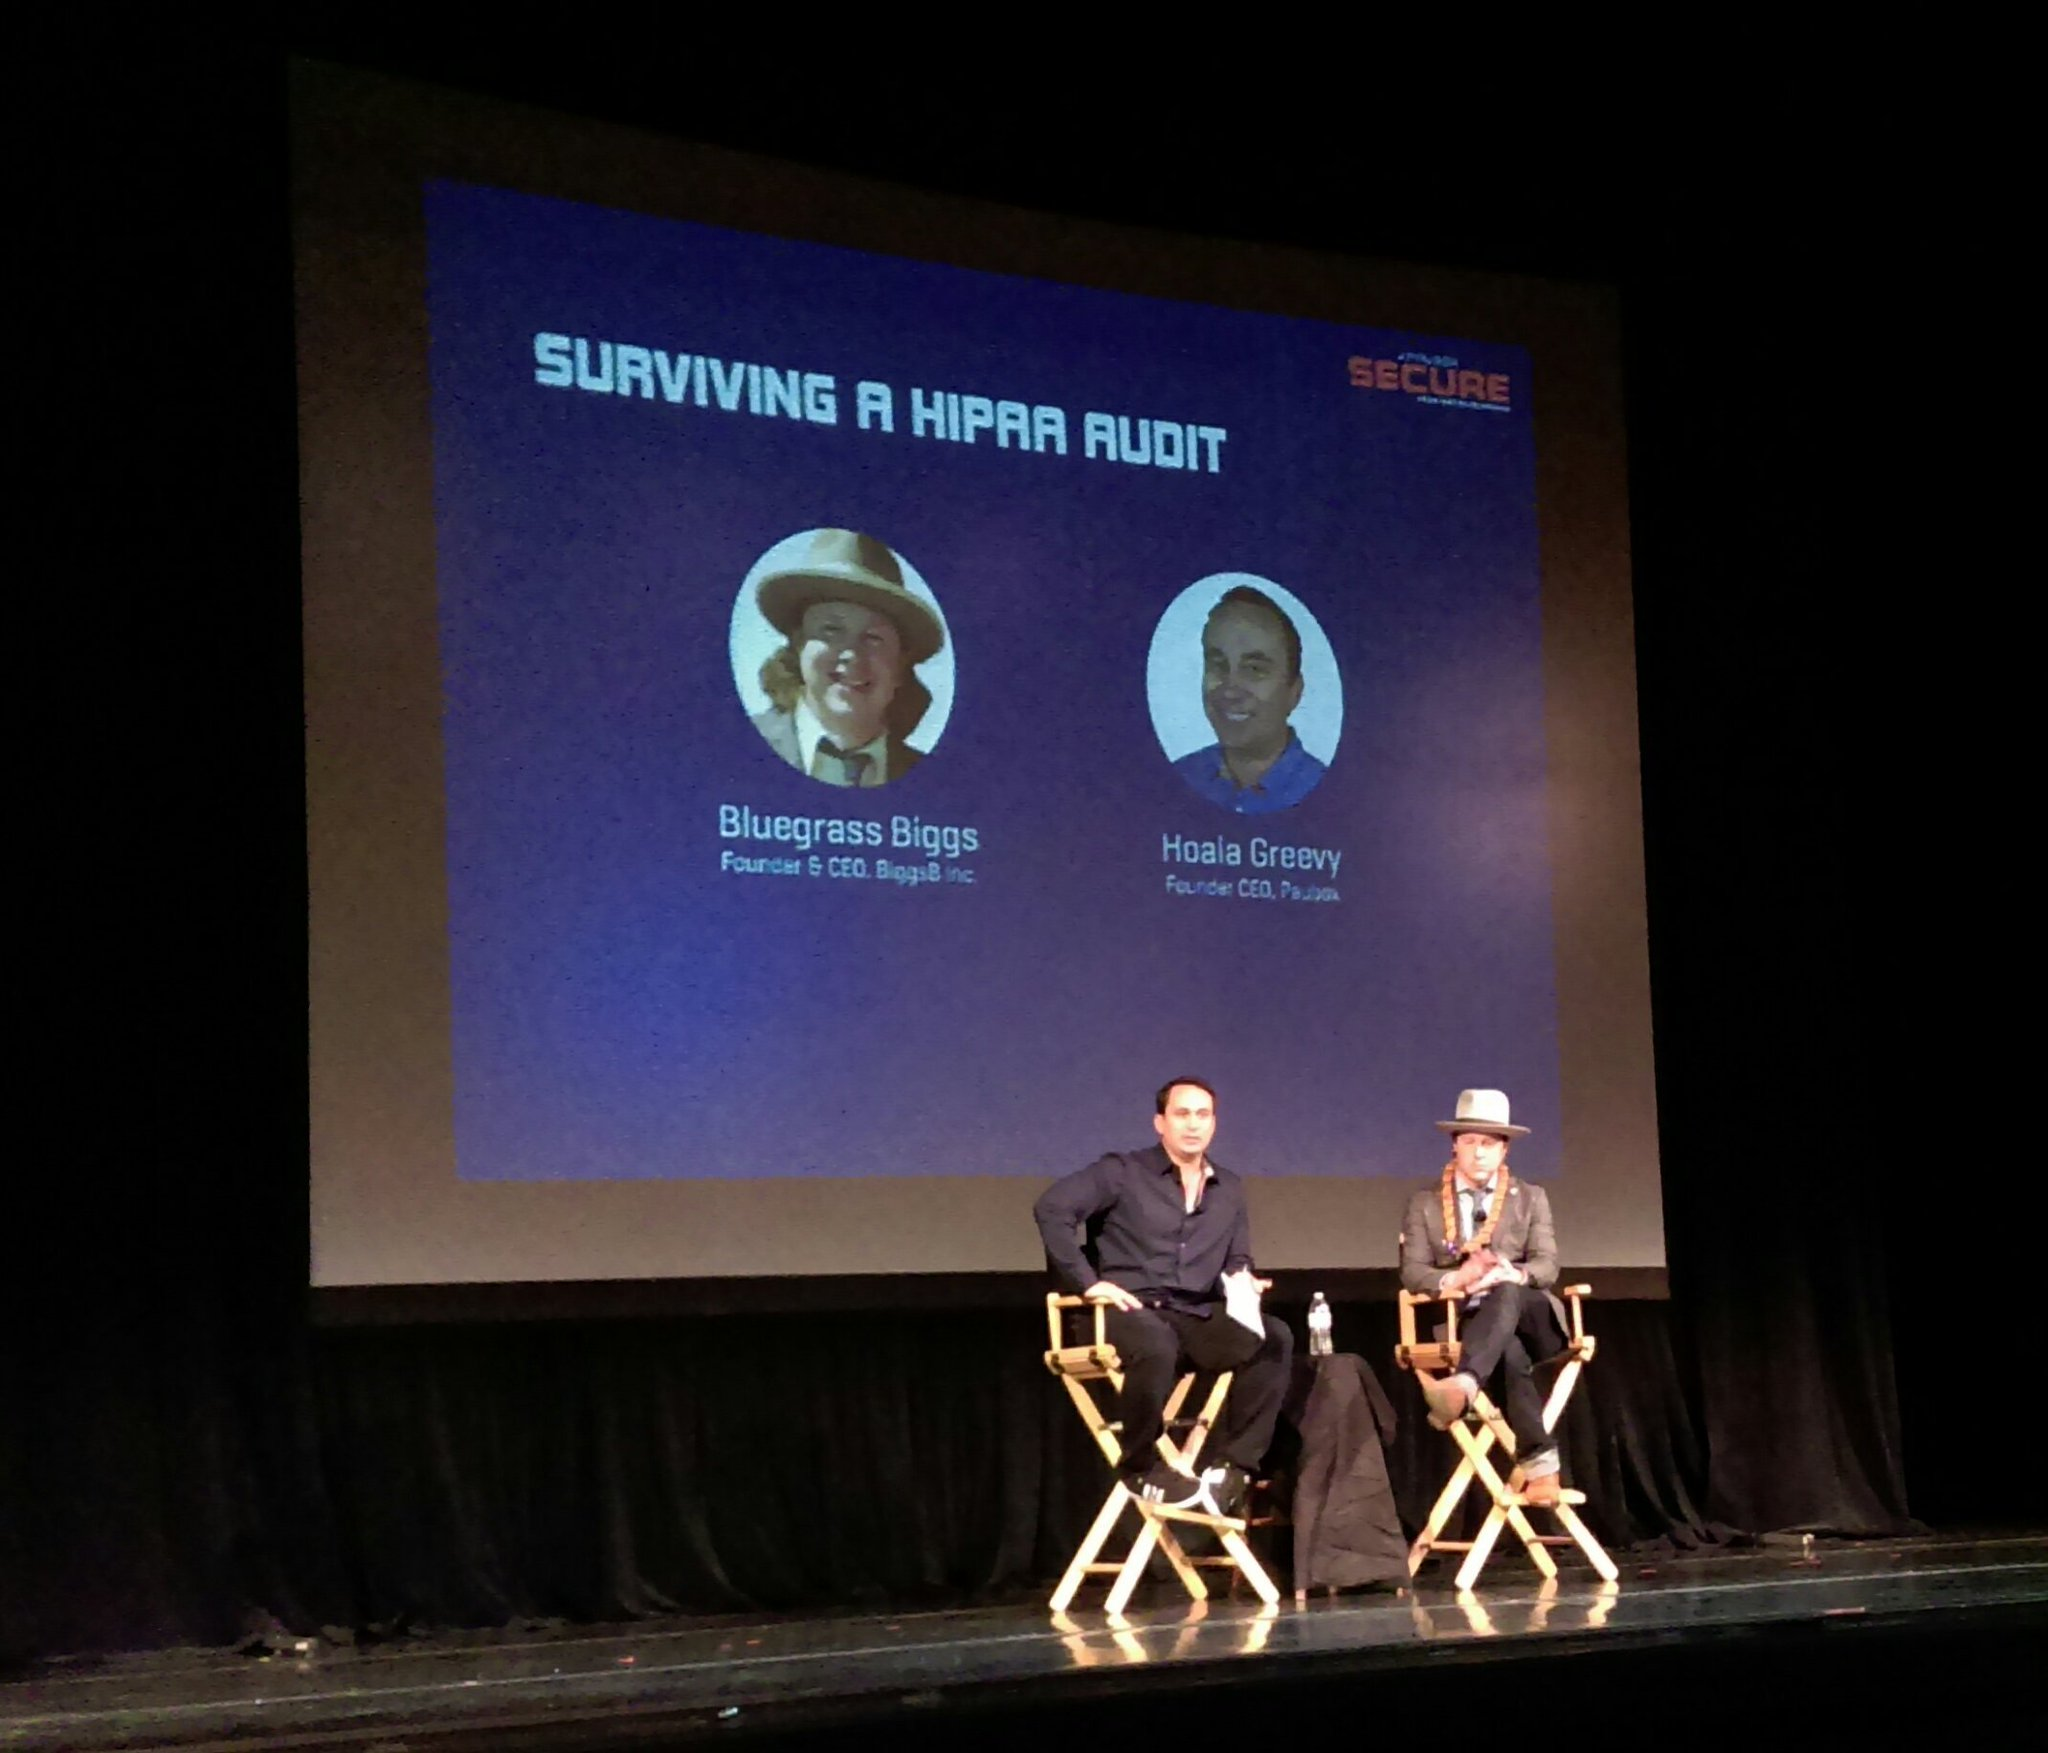 Surviving a HIPAA Audit - A Fireside Chat with Bluegrass Biggs - Paubox SECURE Conference